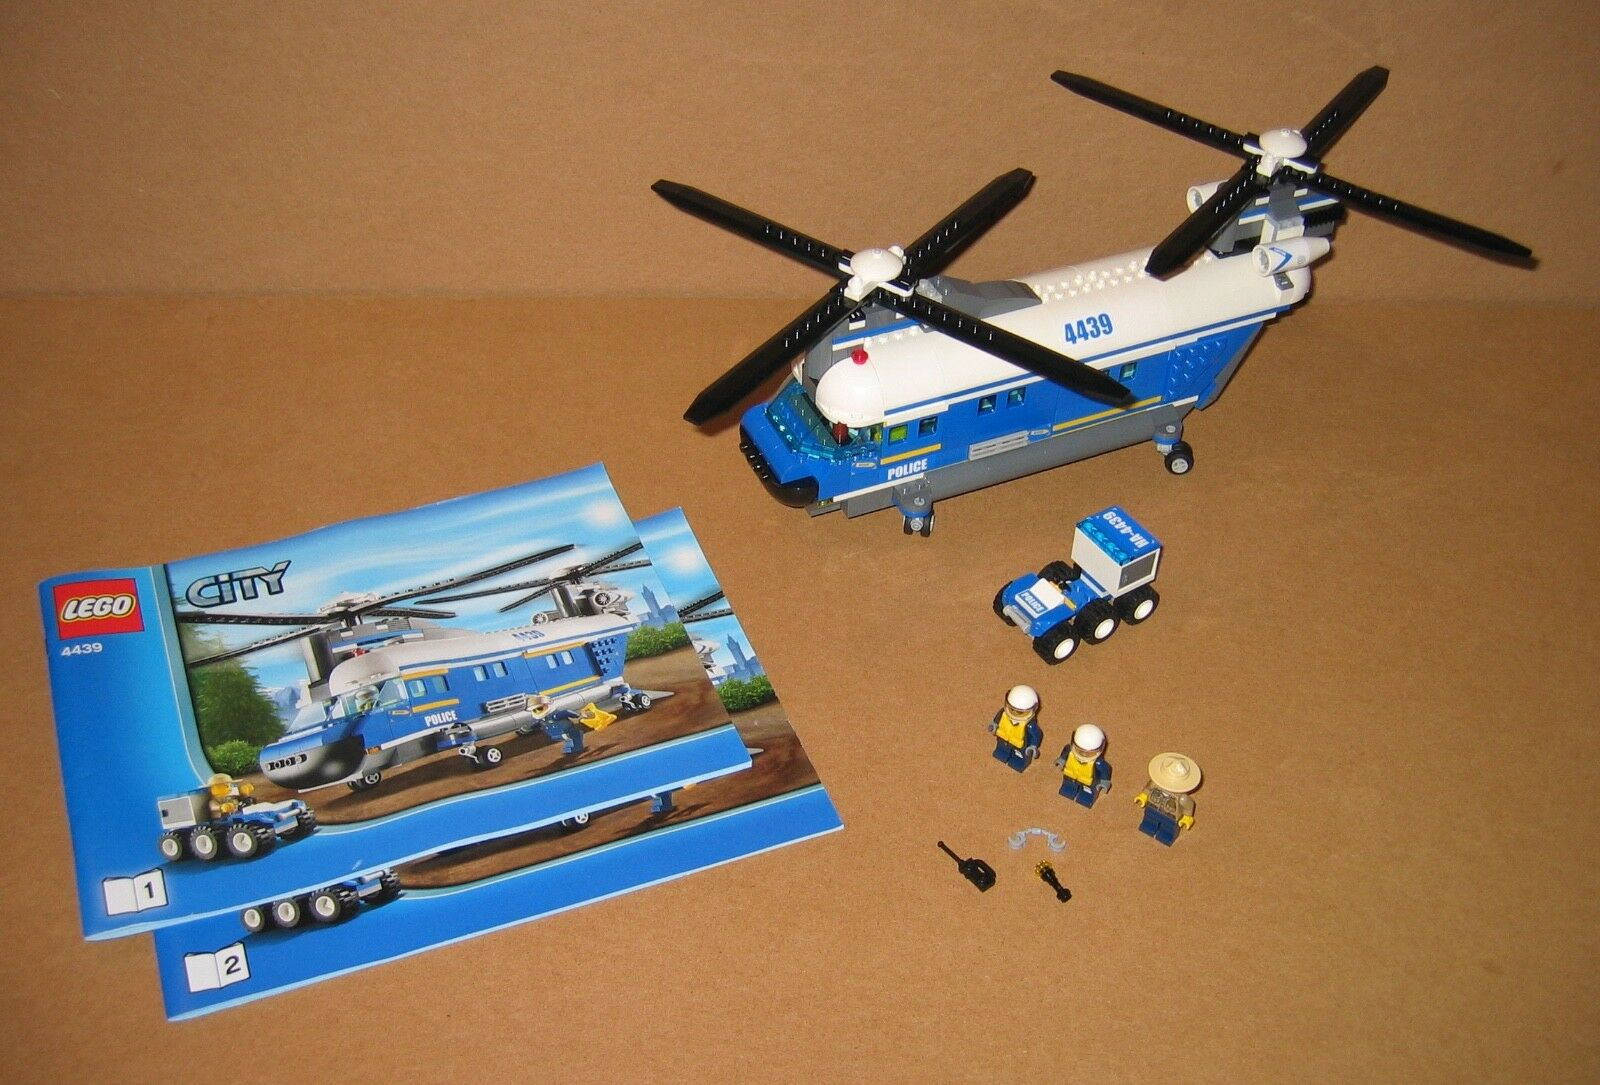 4439 LEGO Heavy Duty Helicopter – 100% Complete w Instructions EX COND 2012